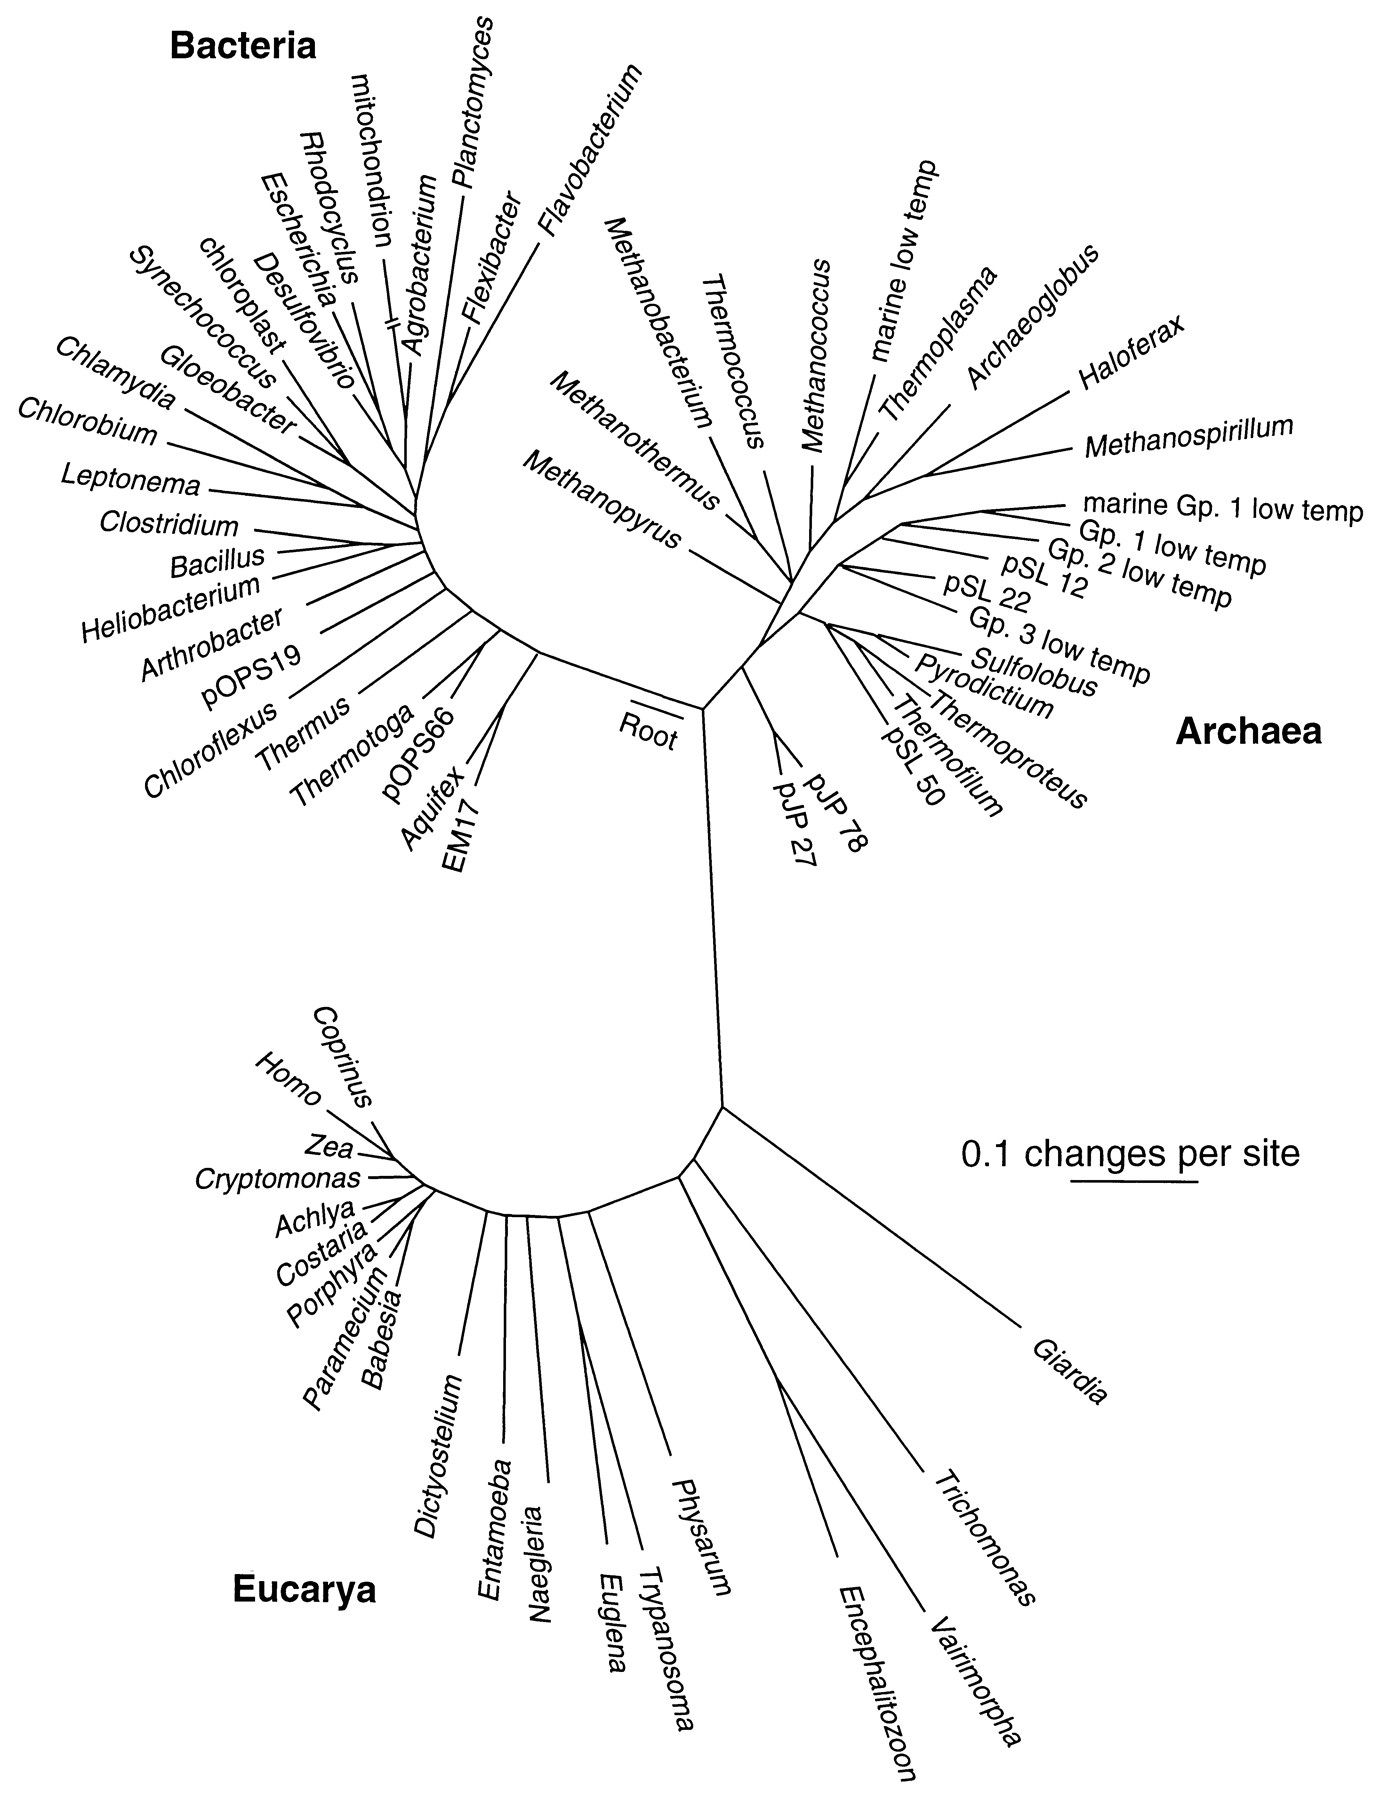 Universal Phylogenetic Tree Based On Ssu Rrna Sequences